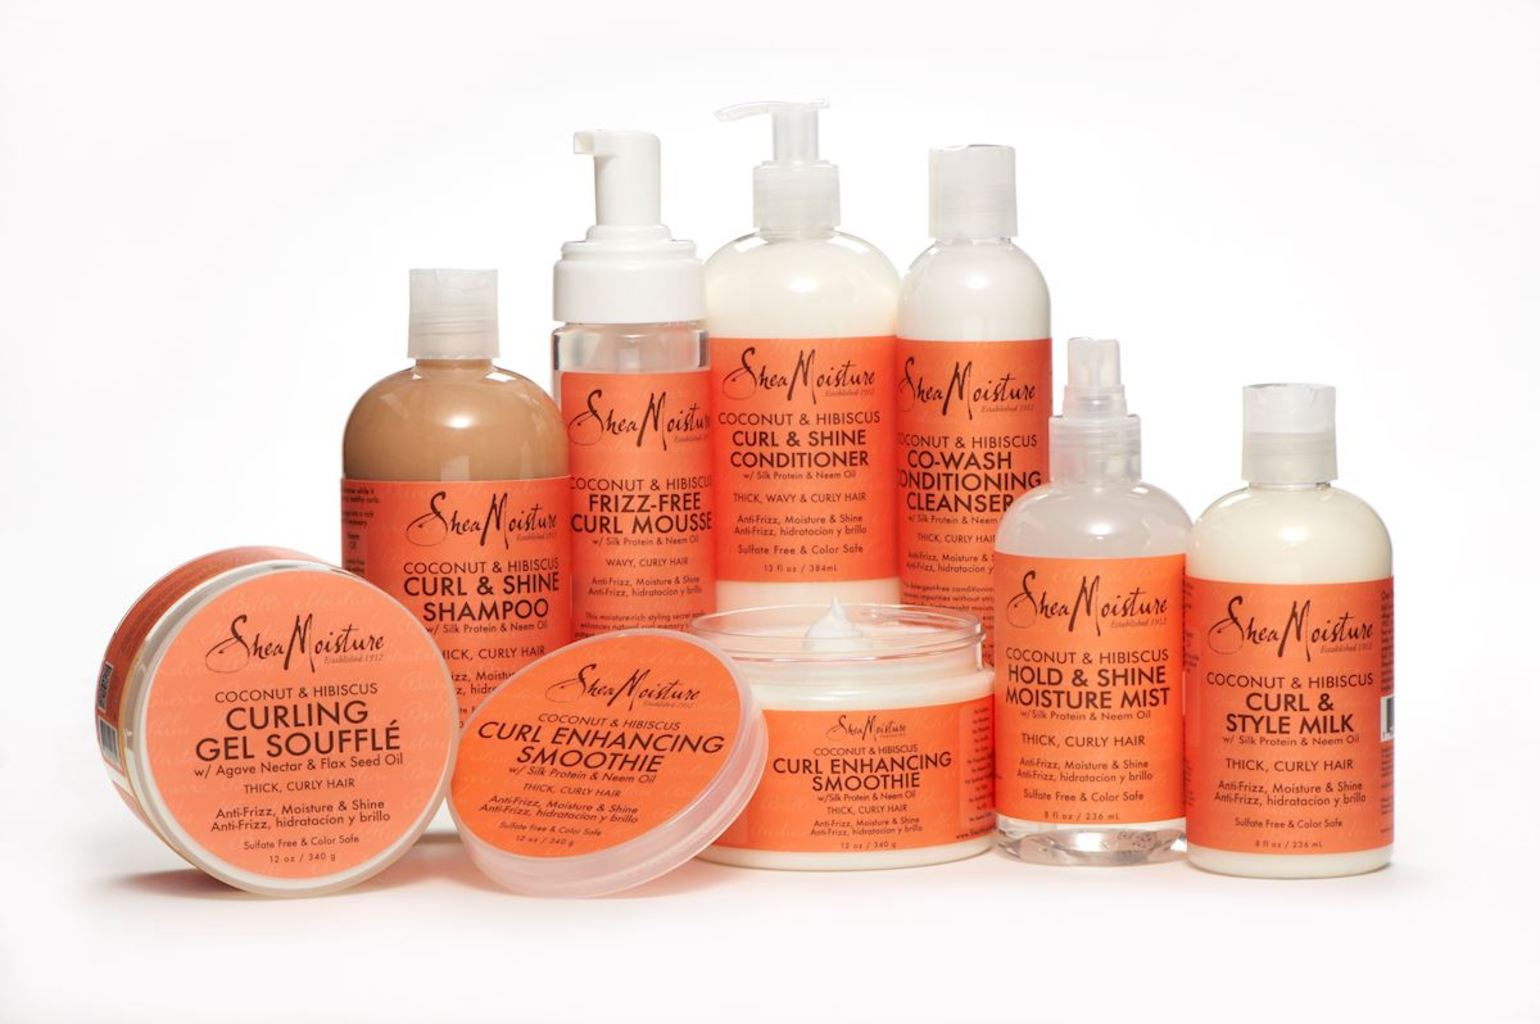 #Amazon has a wide variety of Shea Moisture products, like the Curl & Shine Collection.